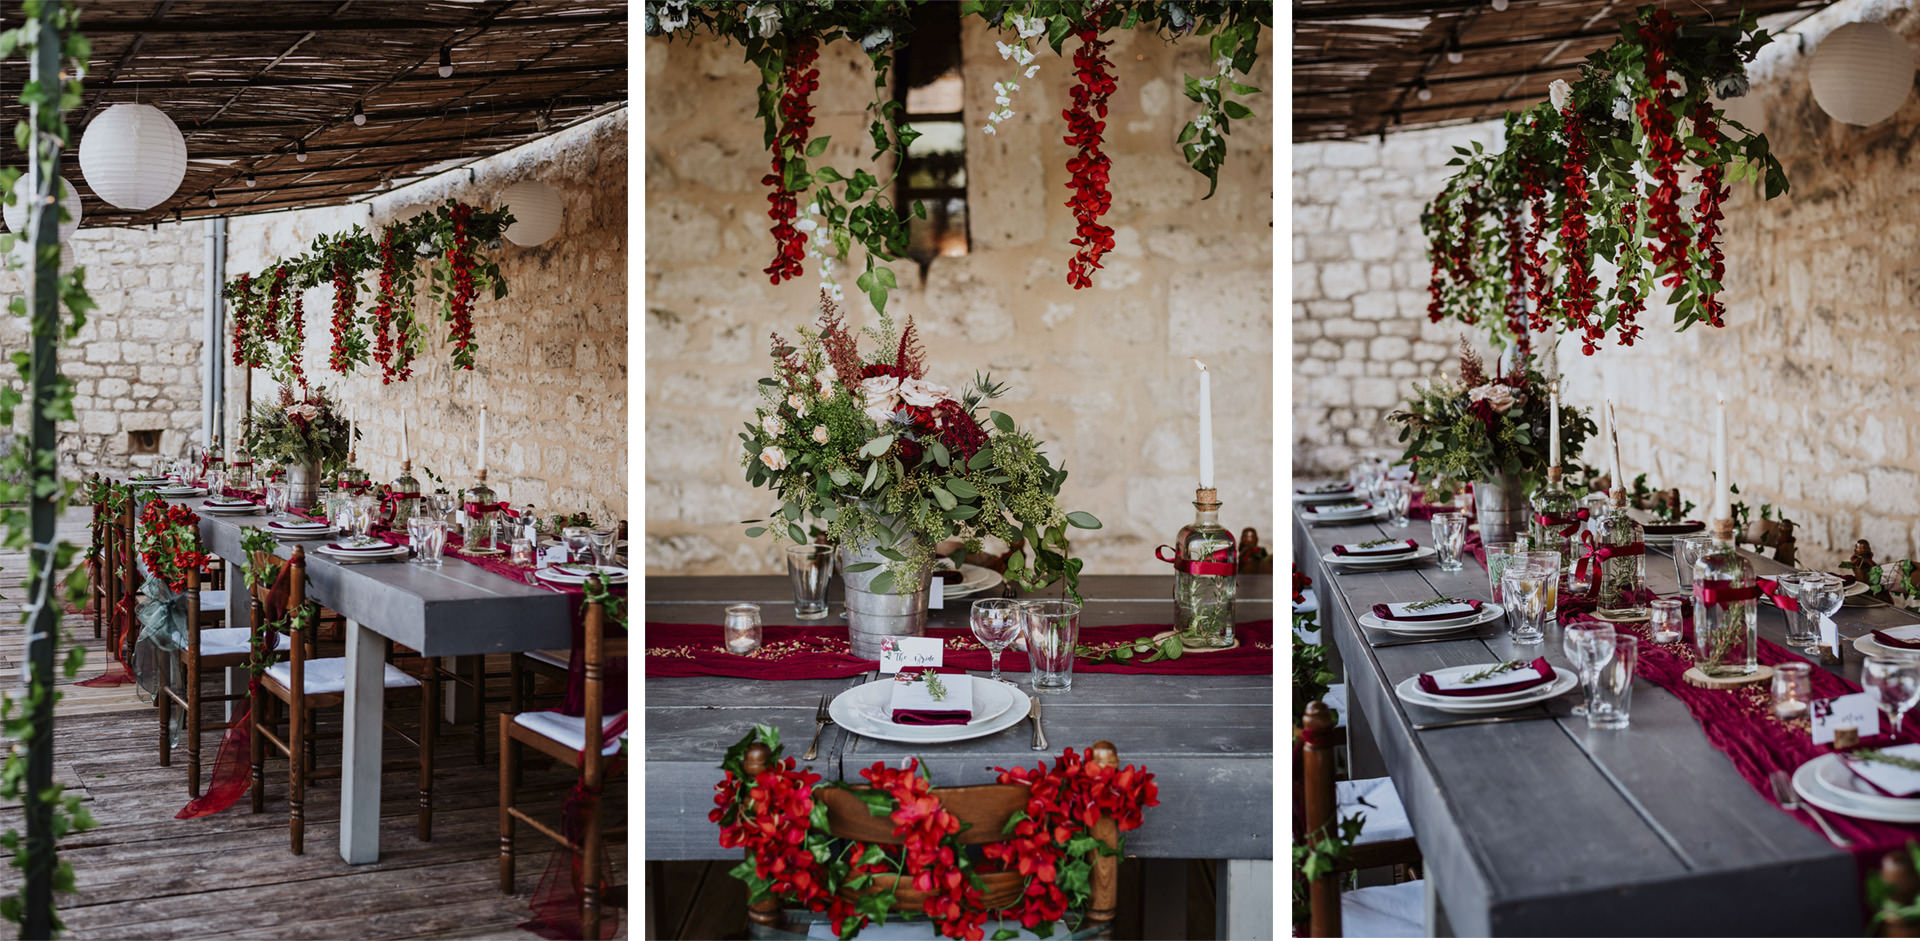 Chateau wedding venue france inspiration